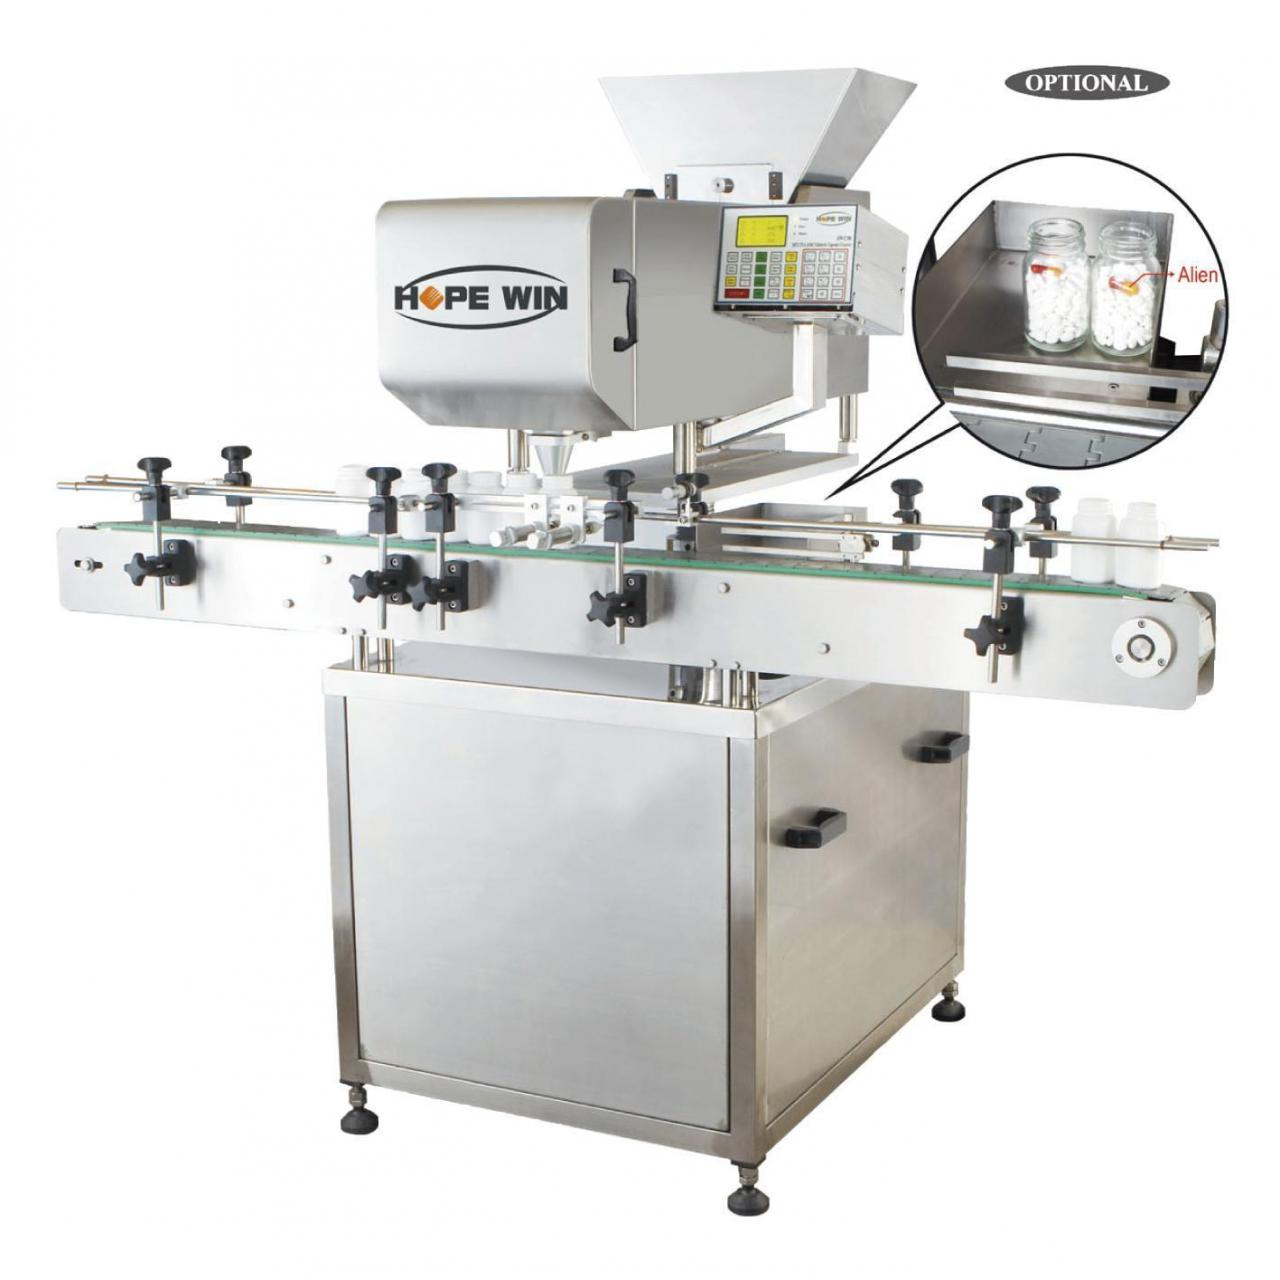 Multi-Channel Counter Multi Channel Counting Machine